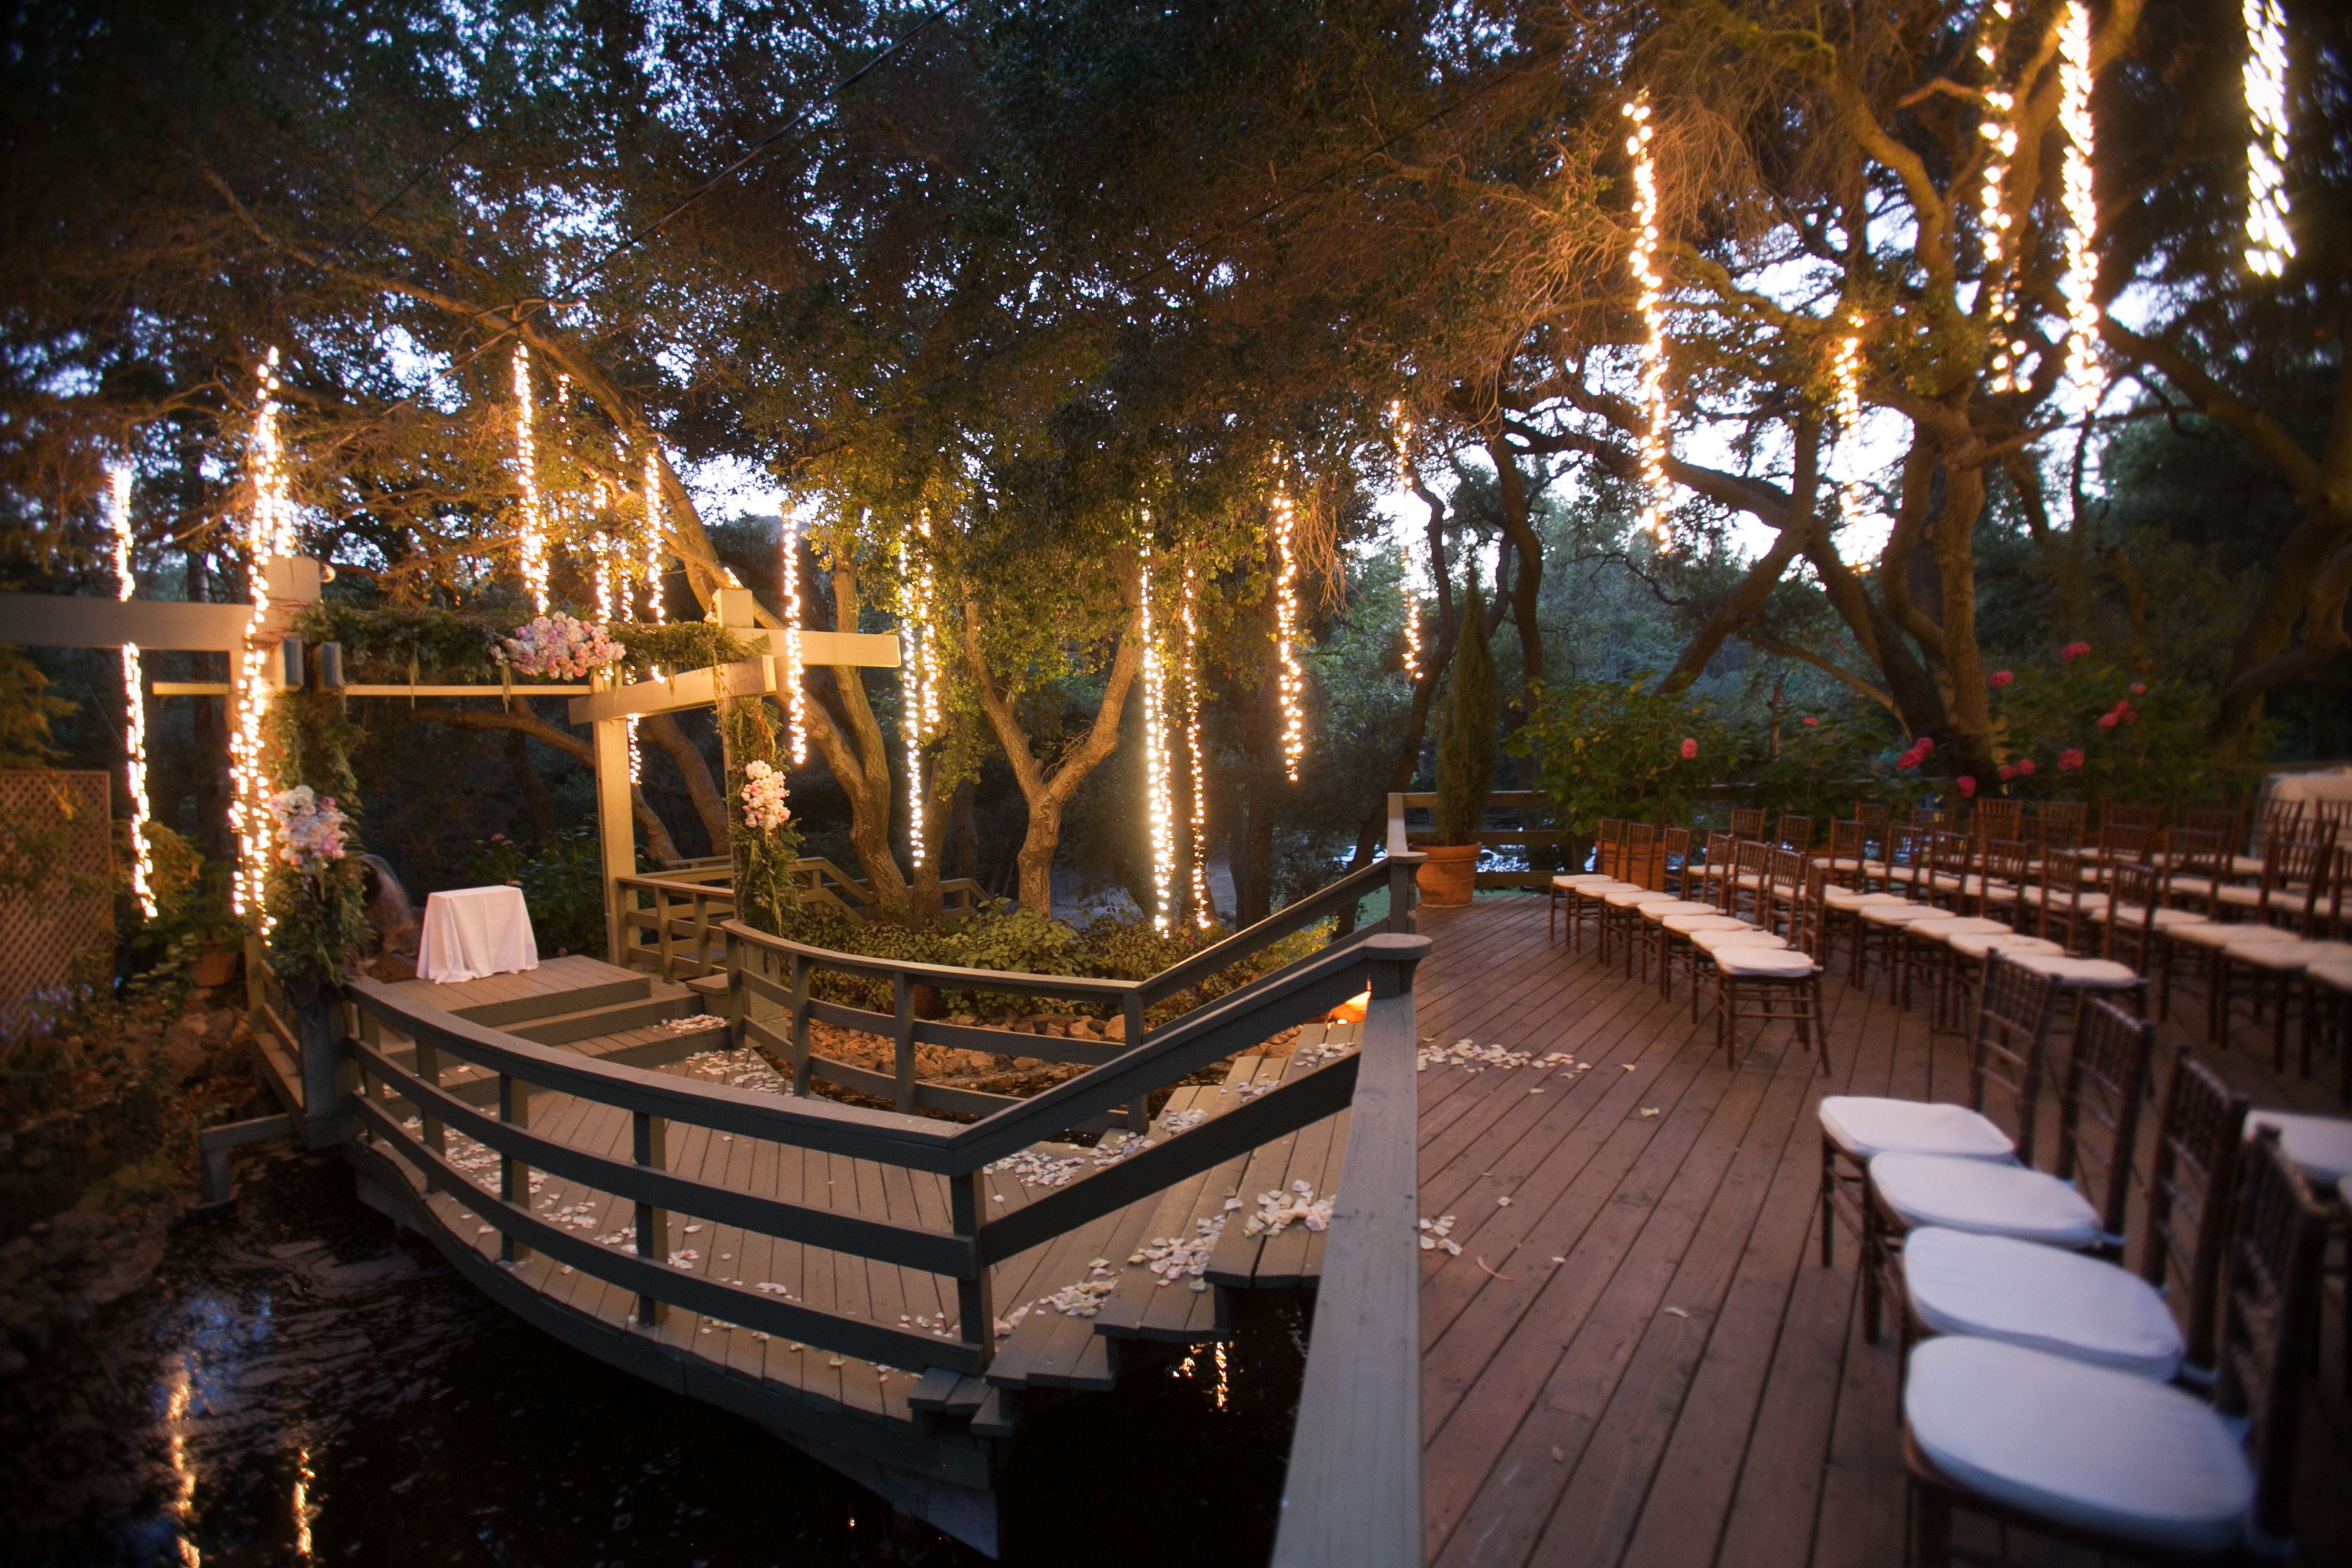 The Oaks ceremony site at Calamigos Ranch in Malibu. The